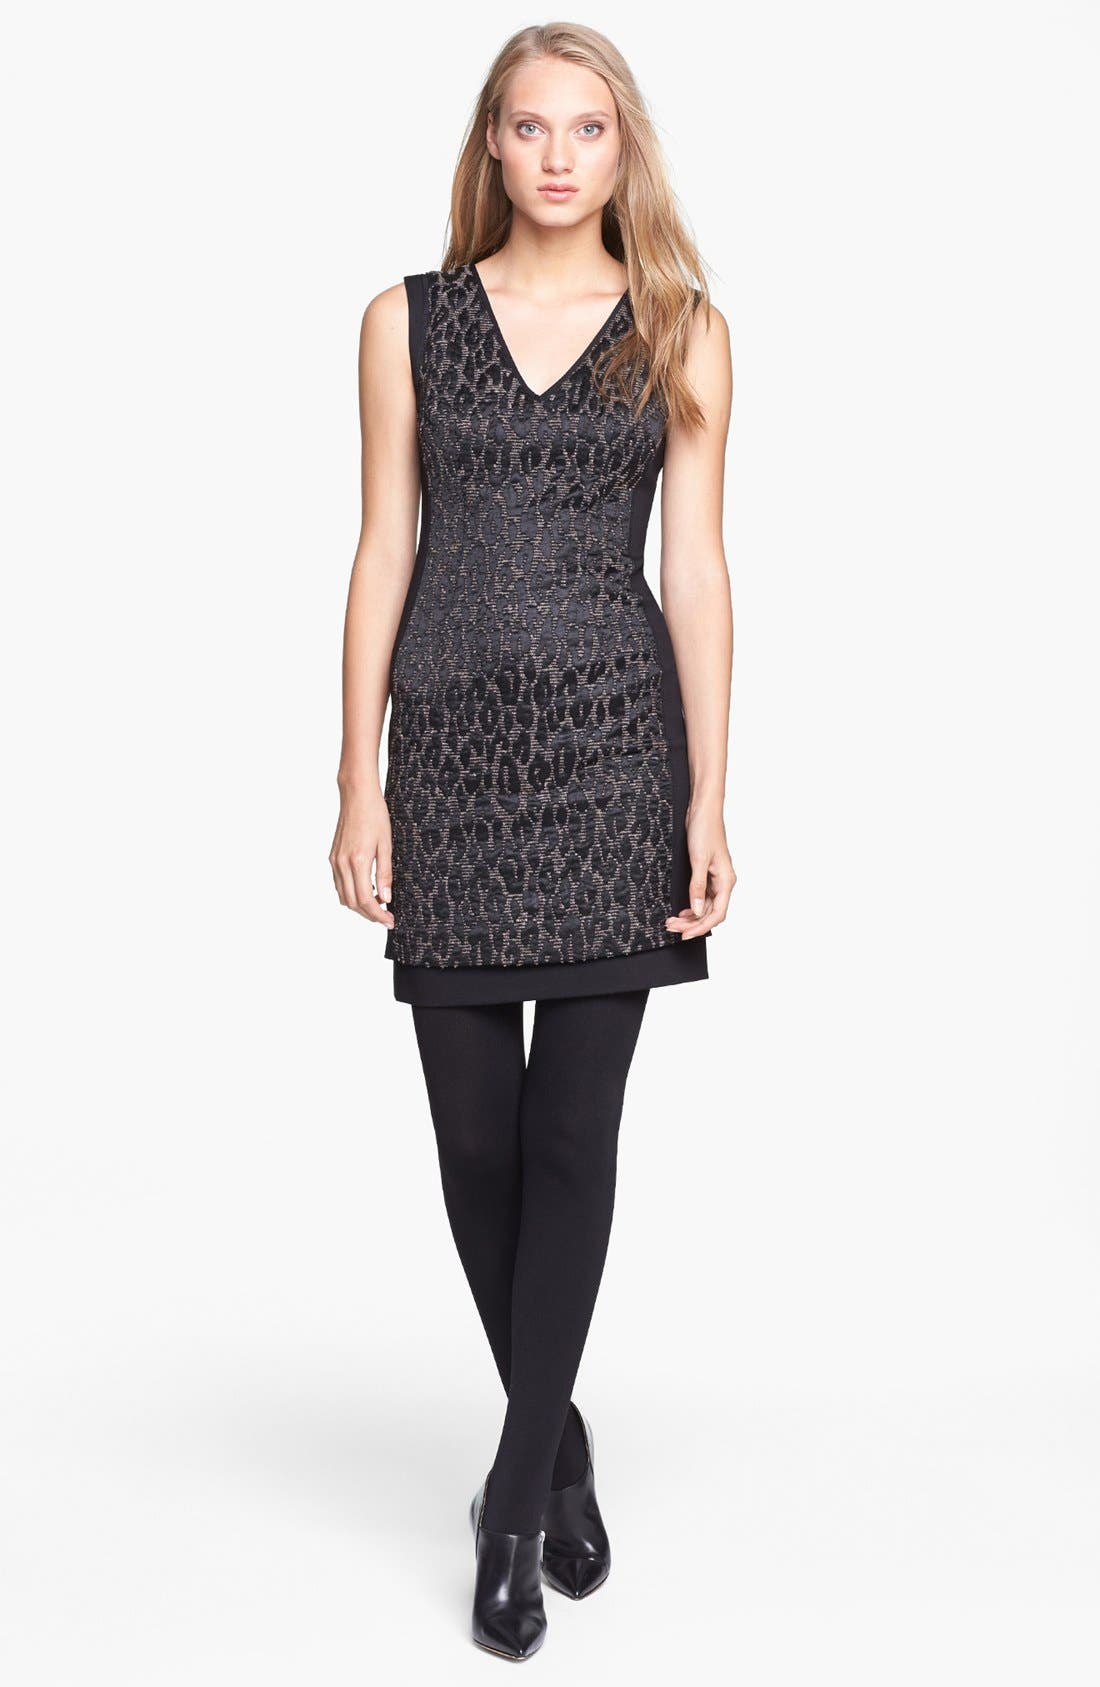 Alternate Image 1 Selected - Trina Turk 'Sharise' Jacquard Sheath Dress